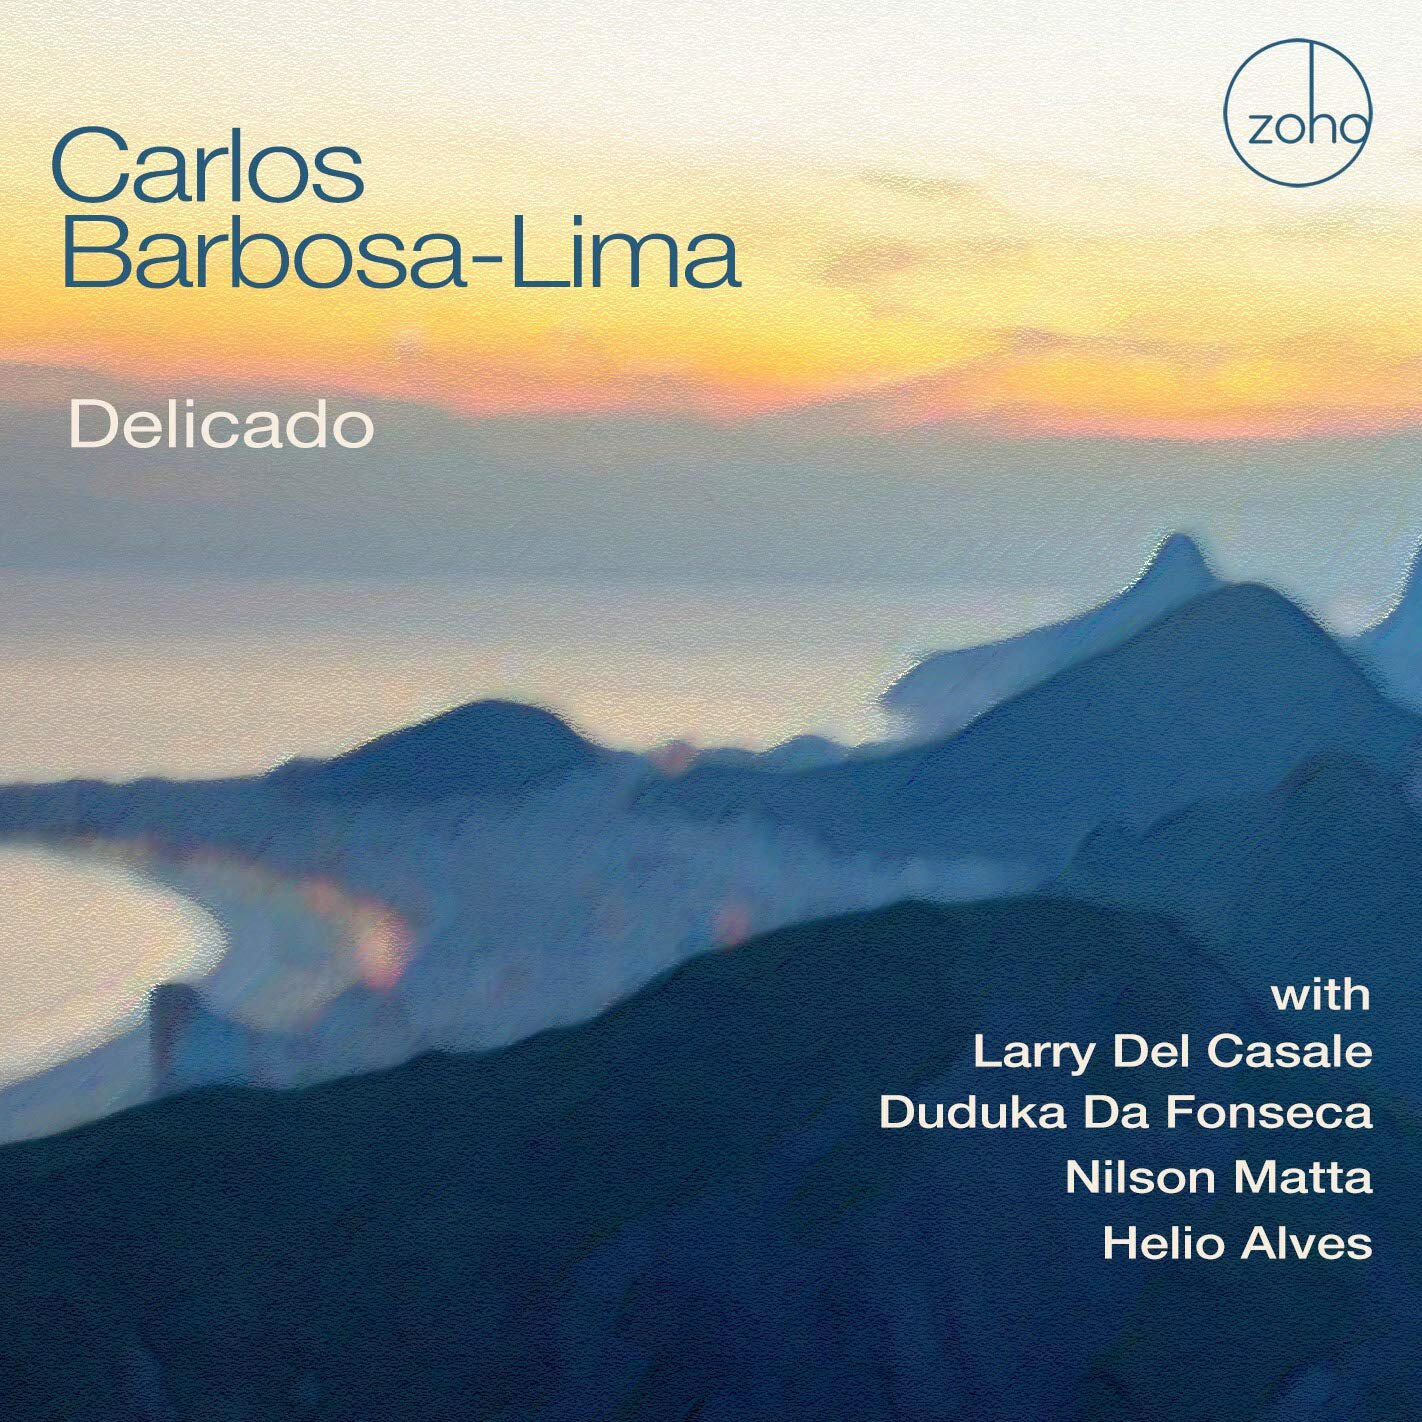 The new Carlos Barbos-Lima's album recorded at The Atelier Music Studio.